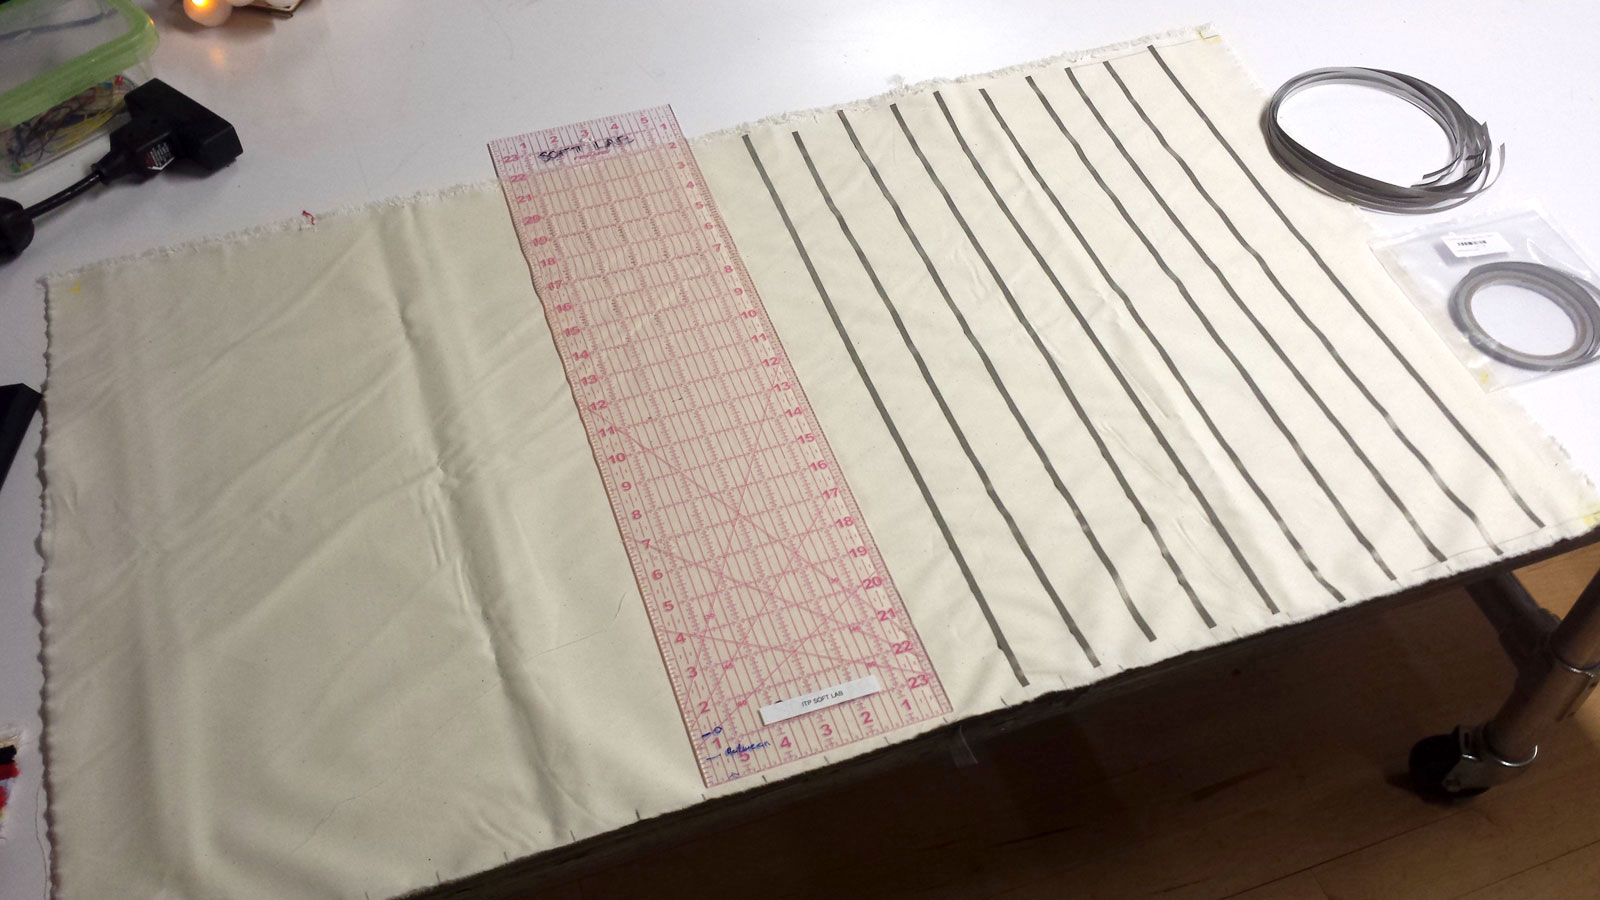 Placing thin strips of conductive tape onto canvas